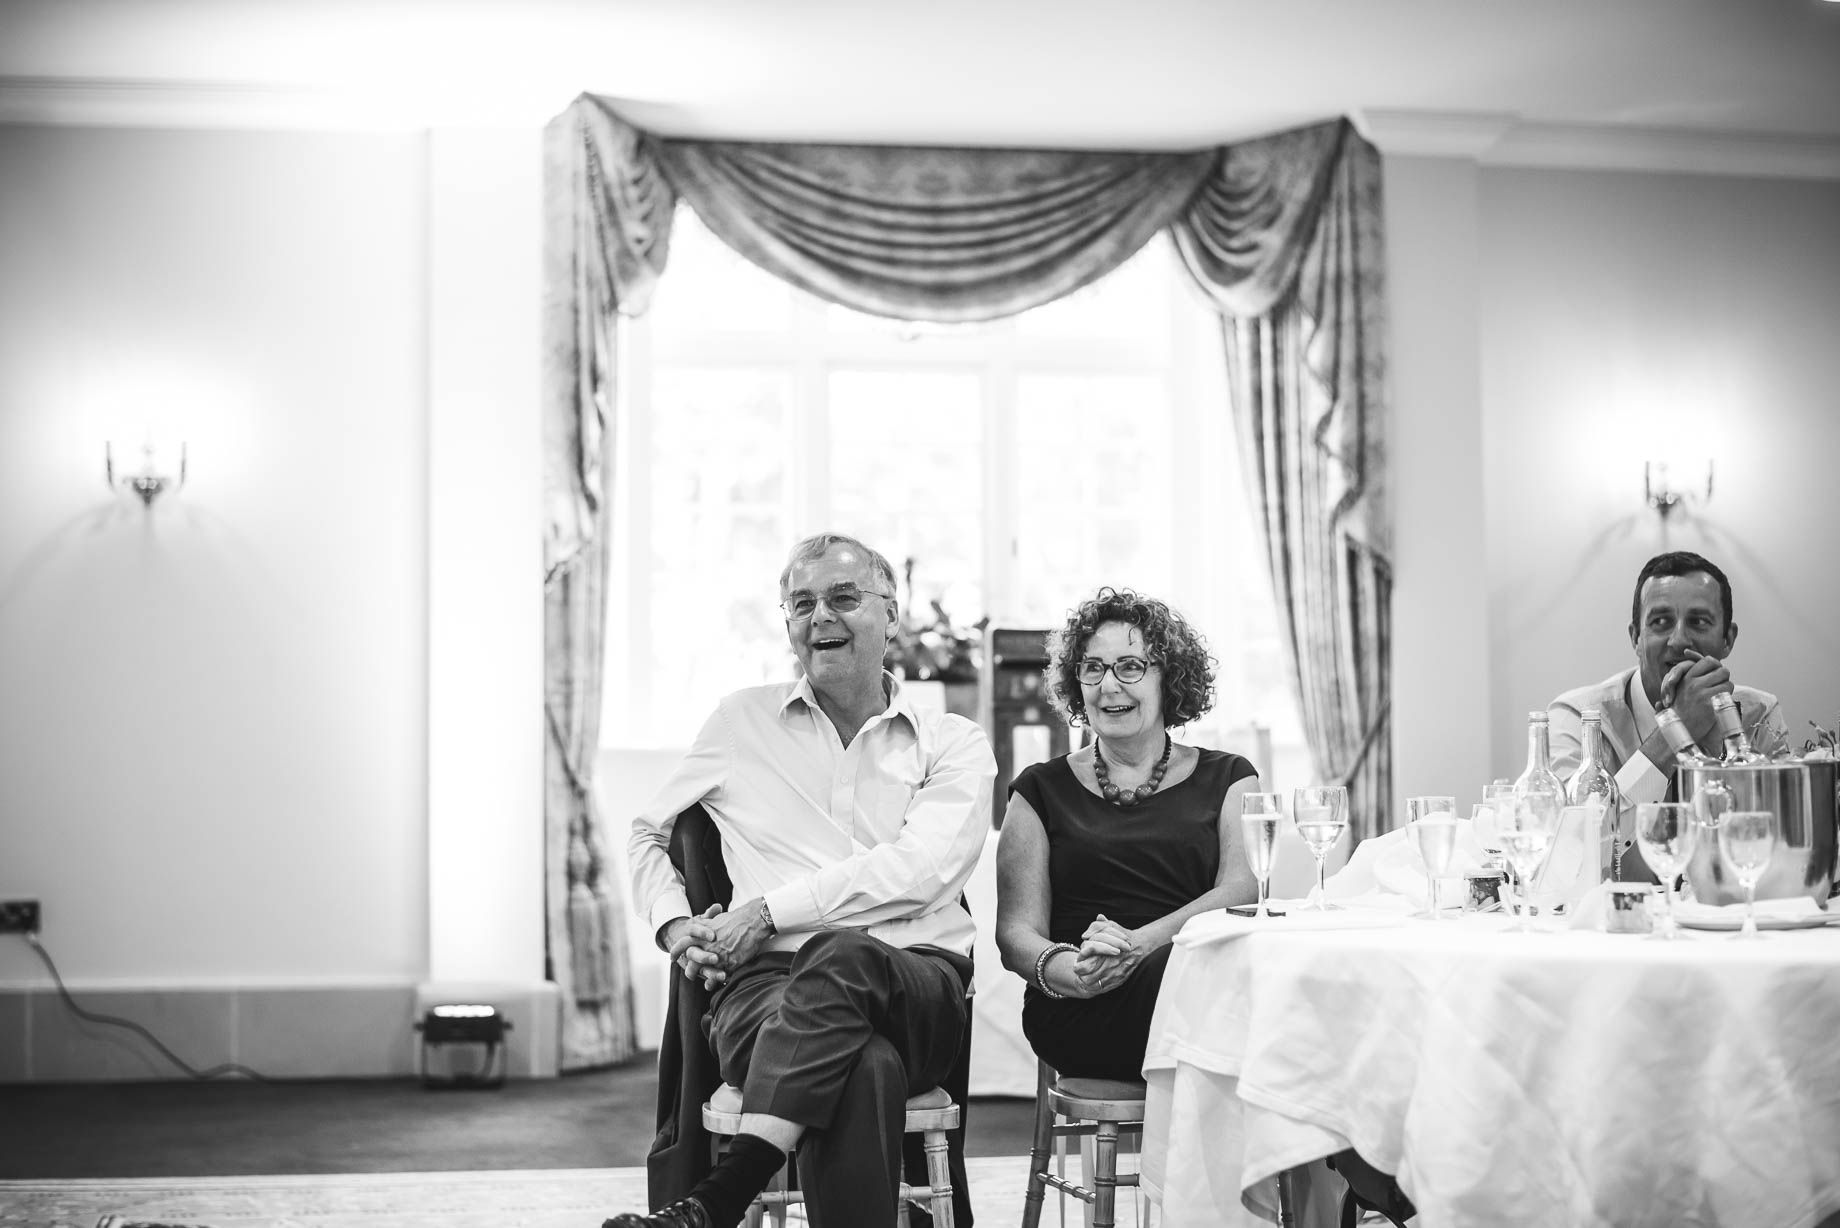 Luton Hoo wedding photography by Guy Collier Photography - Lauren and Gem (133 of 178)